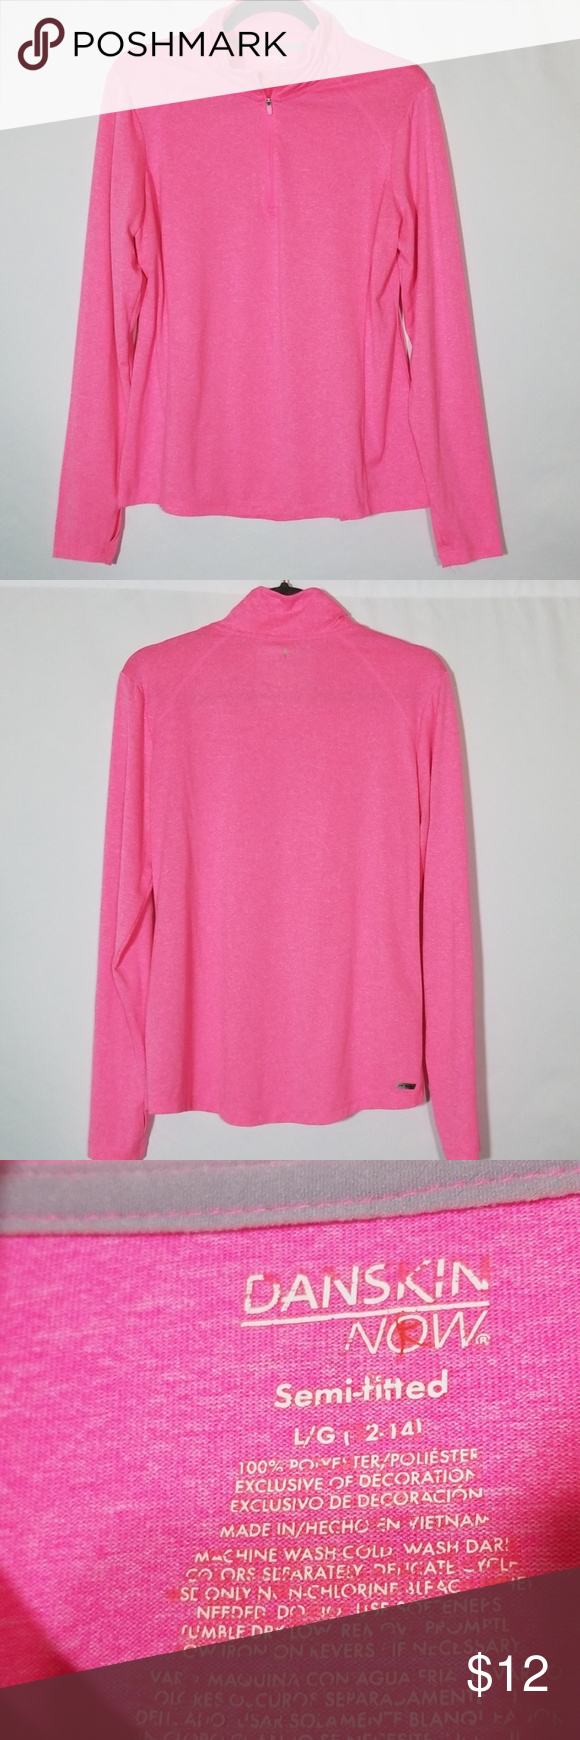 🌼Danskin warmup athletic top Size Large 12 -14 Cute girls pink lightweight top! Girls size Large #0429 Danskin Now Shirts & Tops